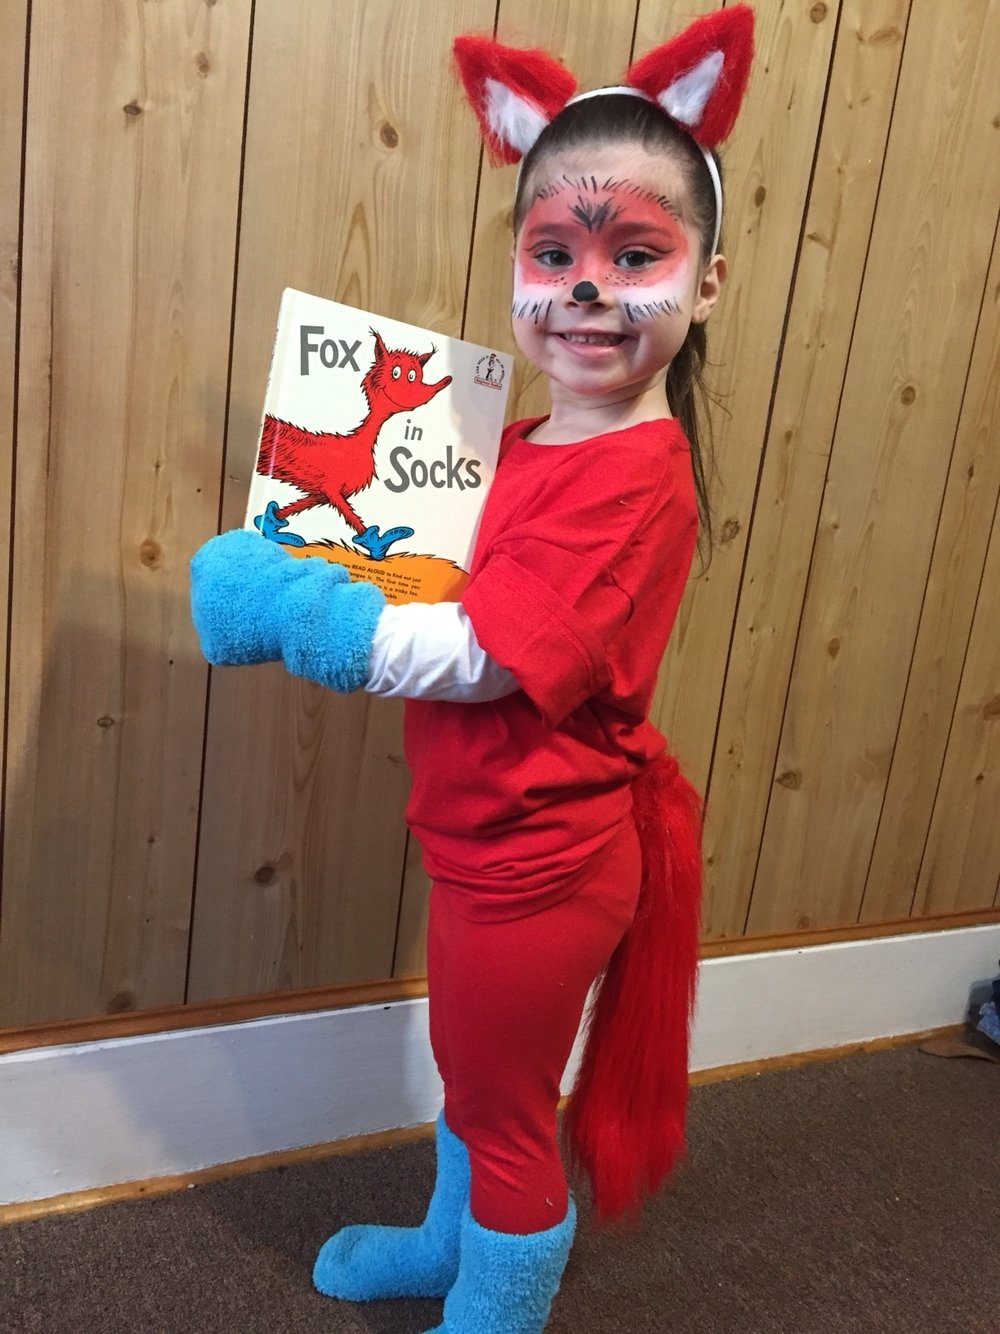 10 Stylish Easy Dr Seuss Costume Ideas character day at school fox in socks diy costume my personal 3 2020